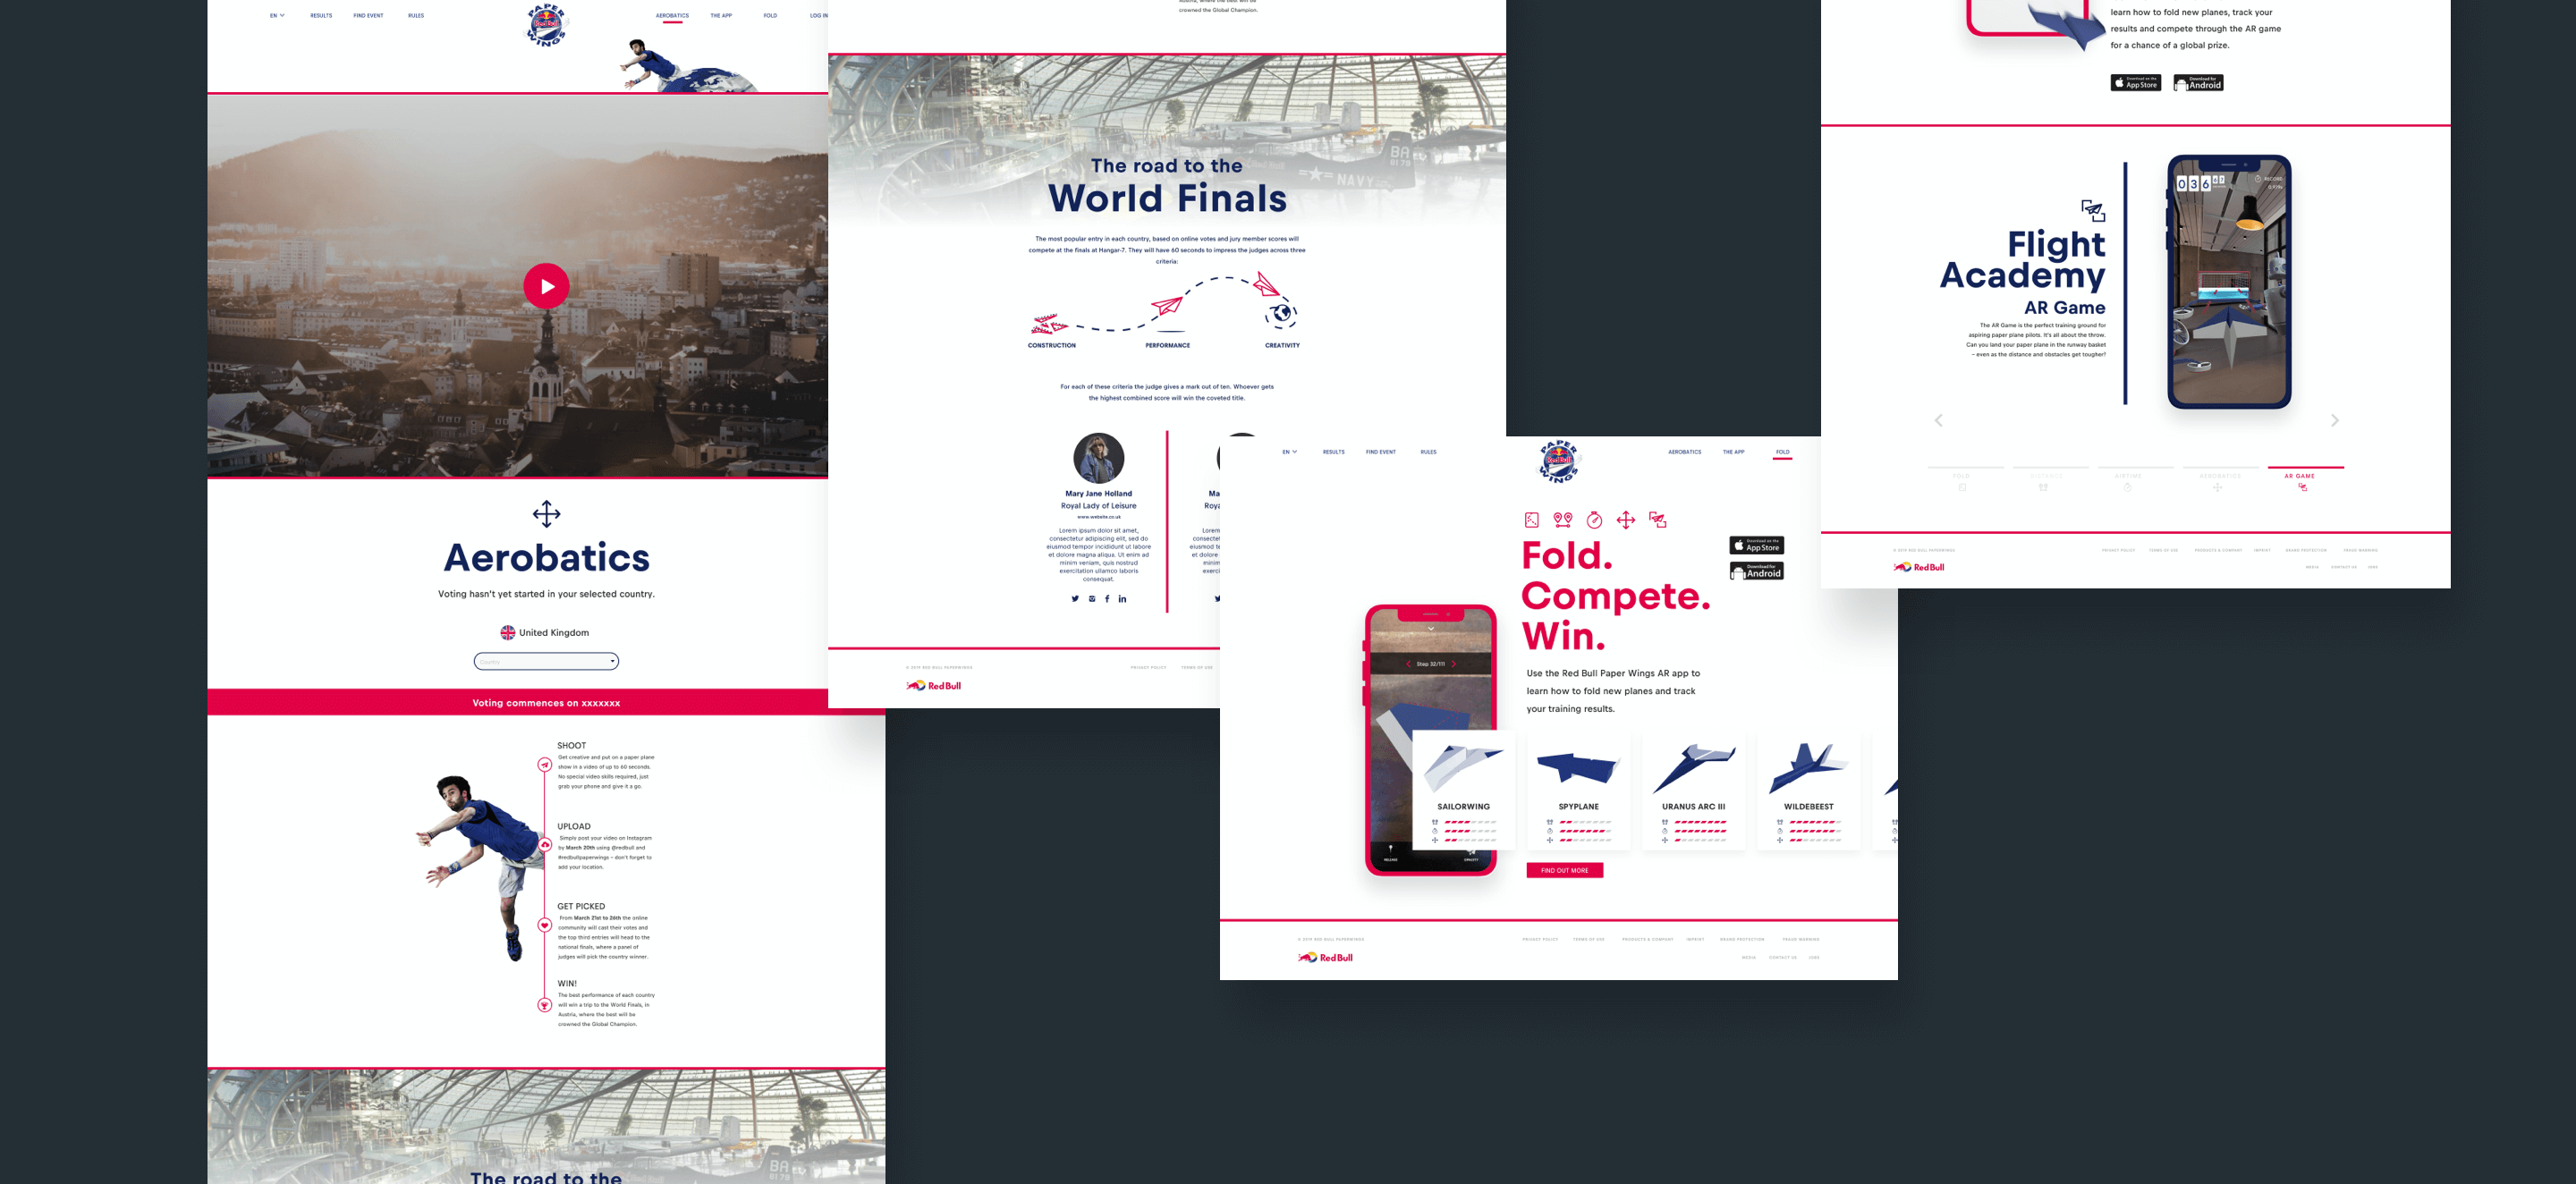 Some shots of the website advertising aerobatics & the mobile app